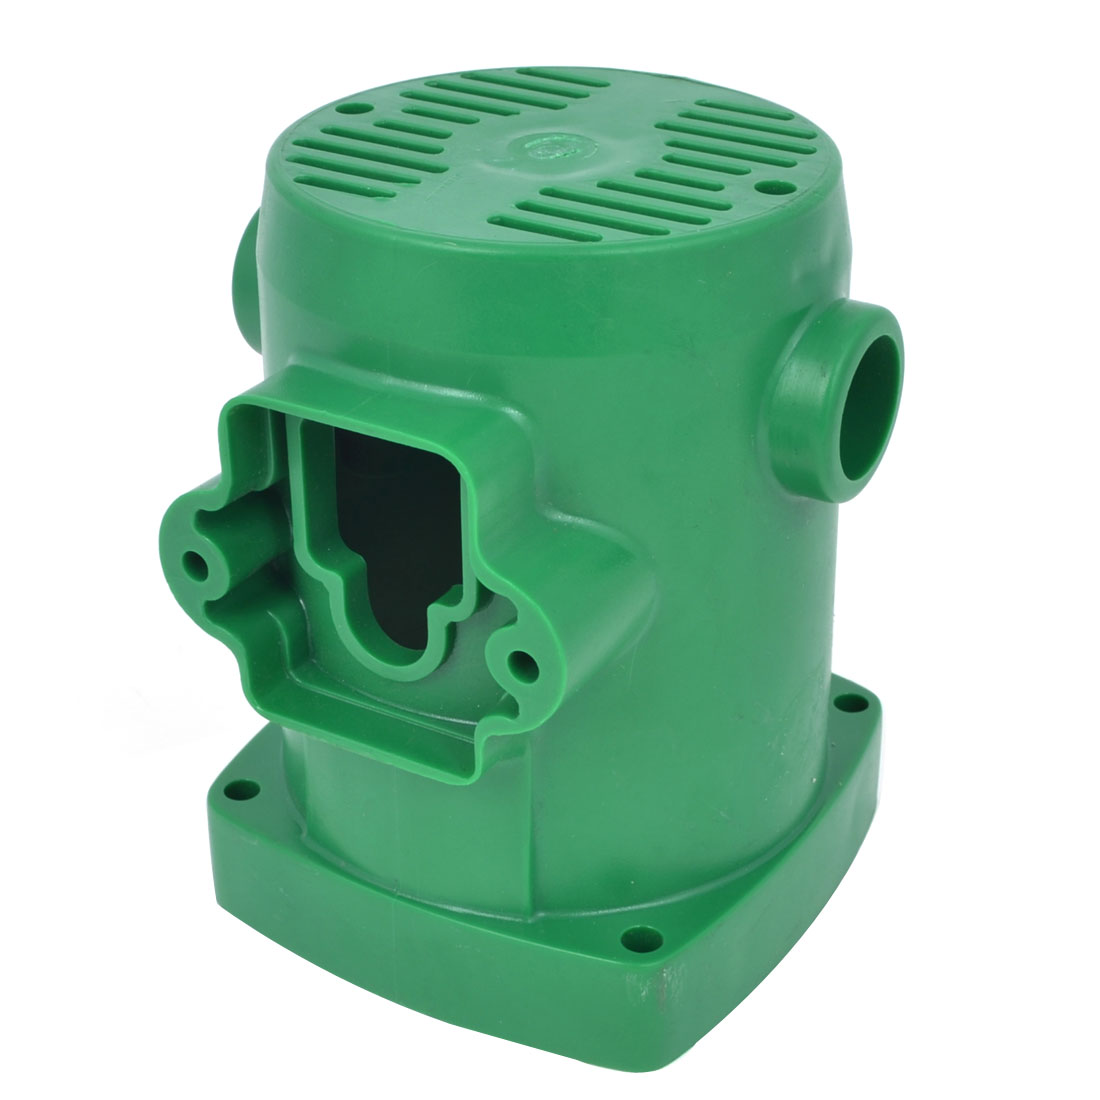 Power Tool Replacement Plastic Stator Case Shell Cover Housing Green for DCA ZIC-FF-26 Electric Hammer